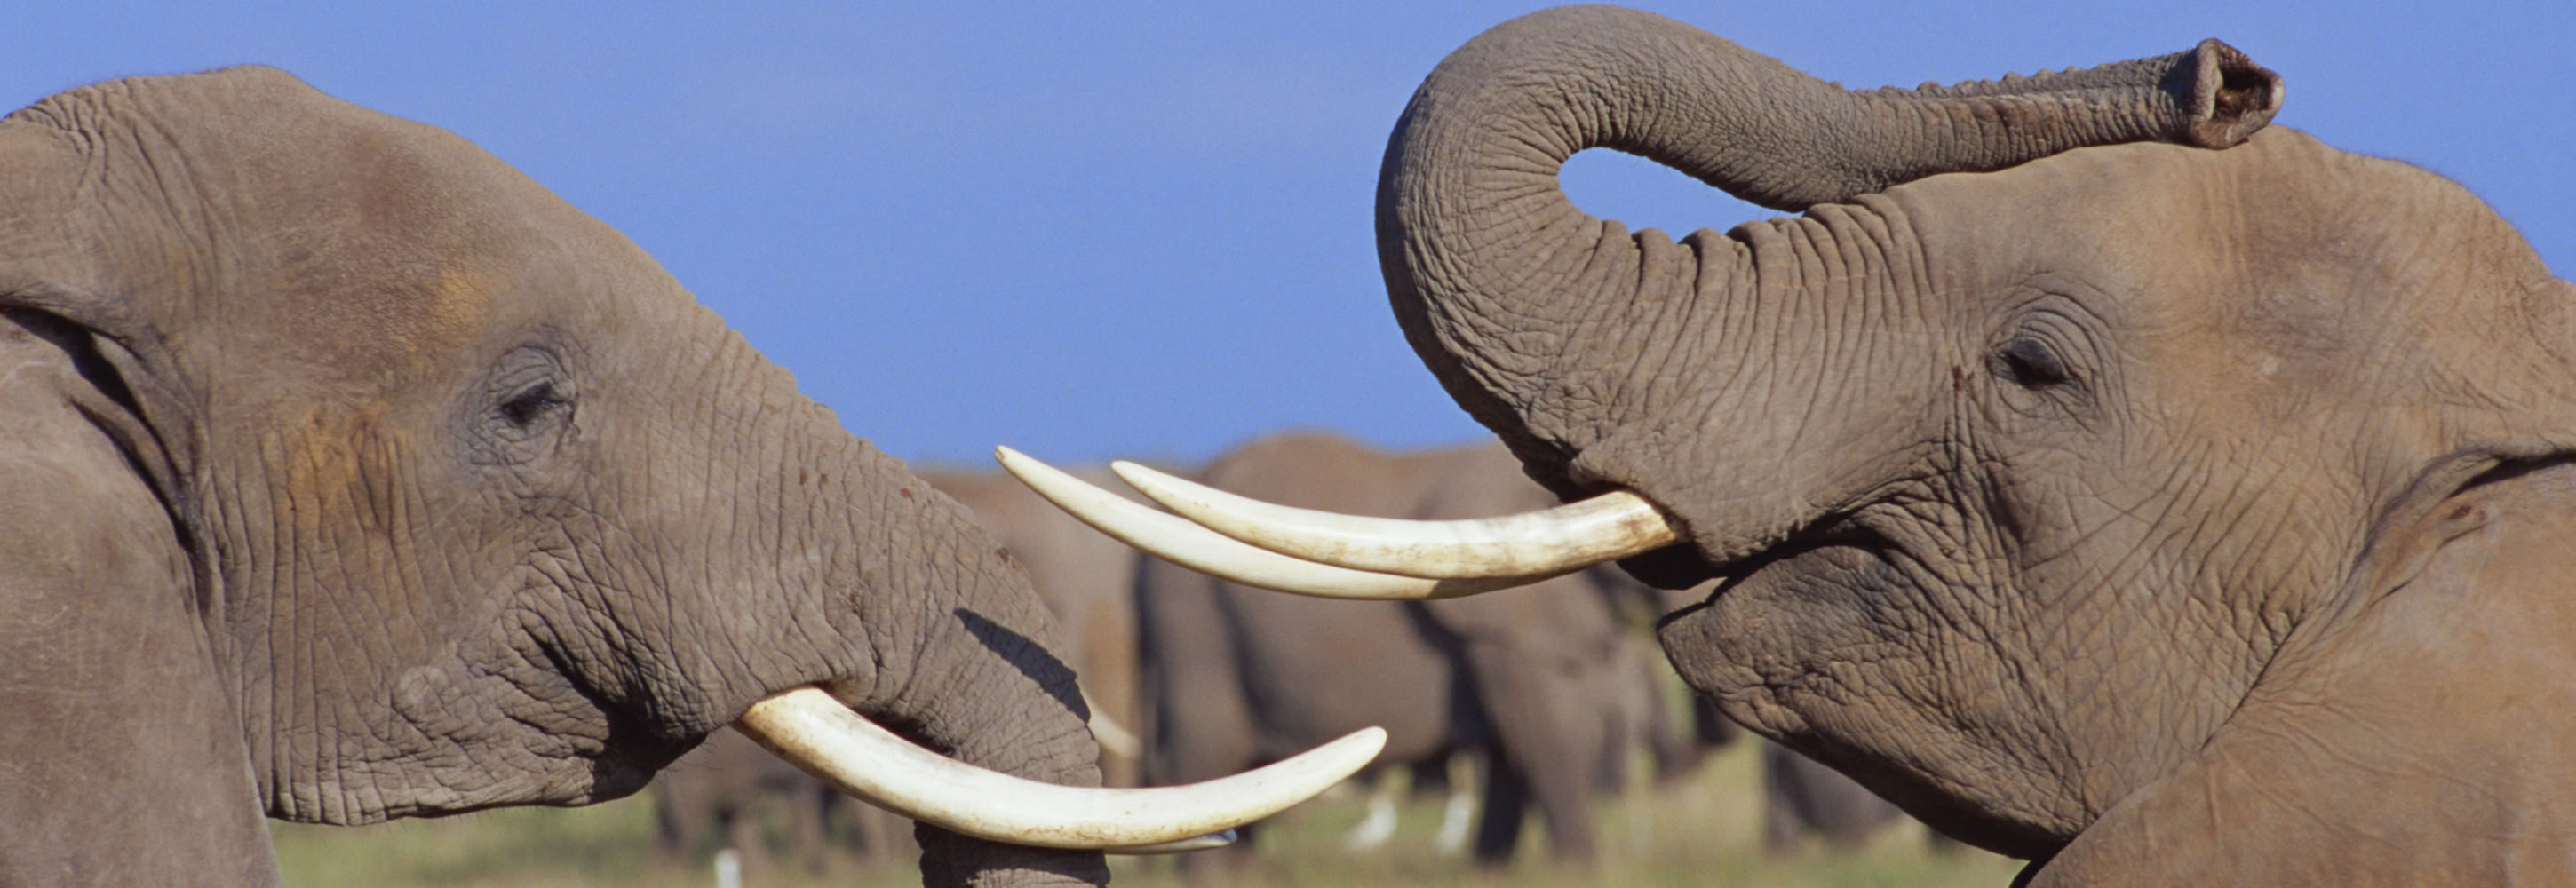 003-elephants-fight-amboseli